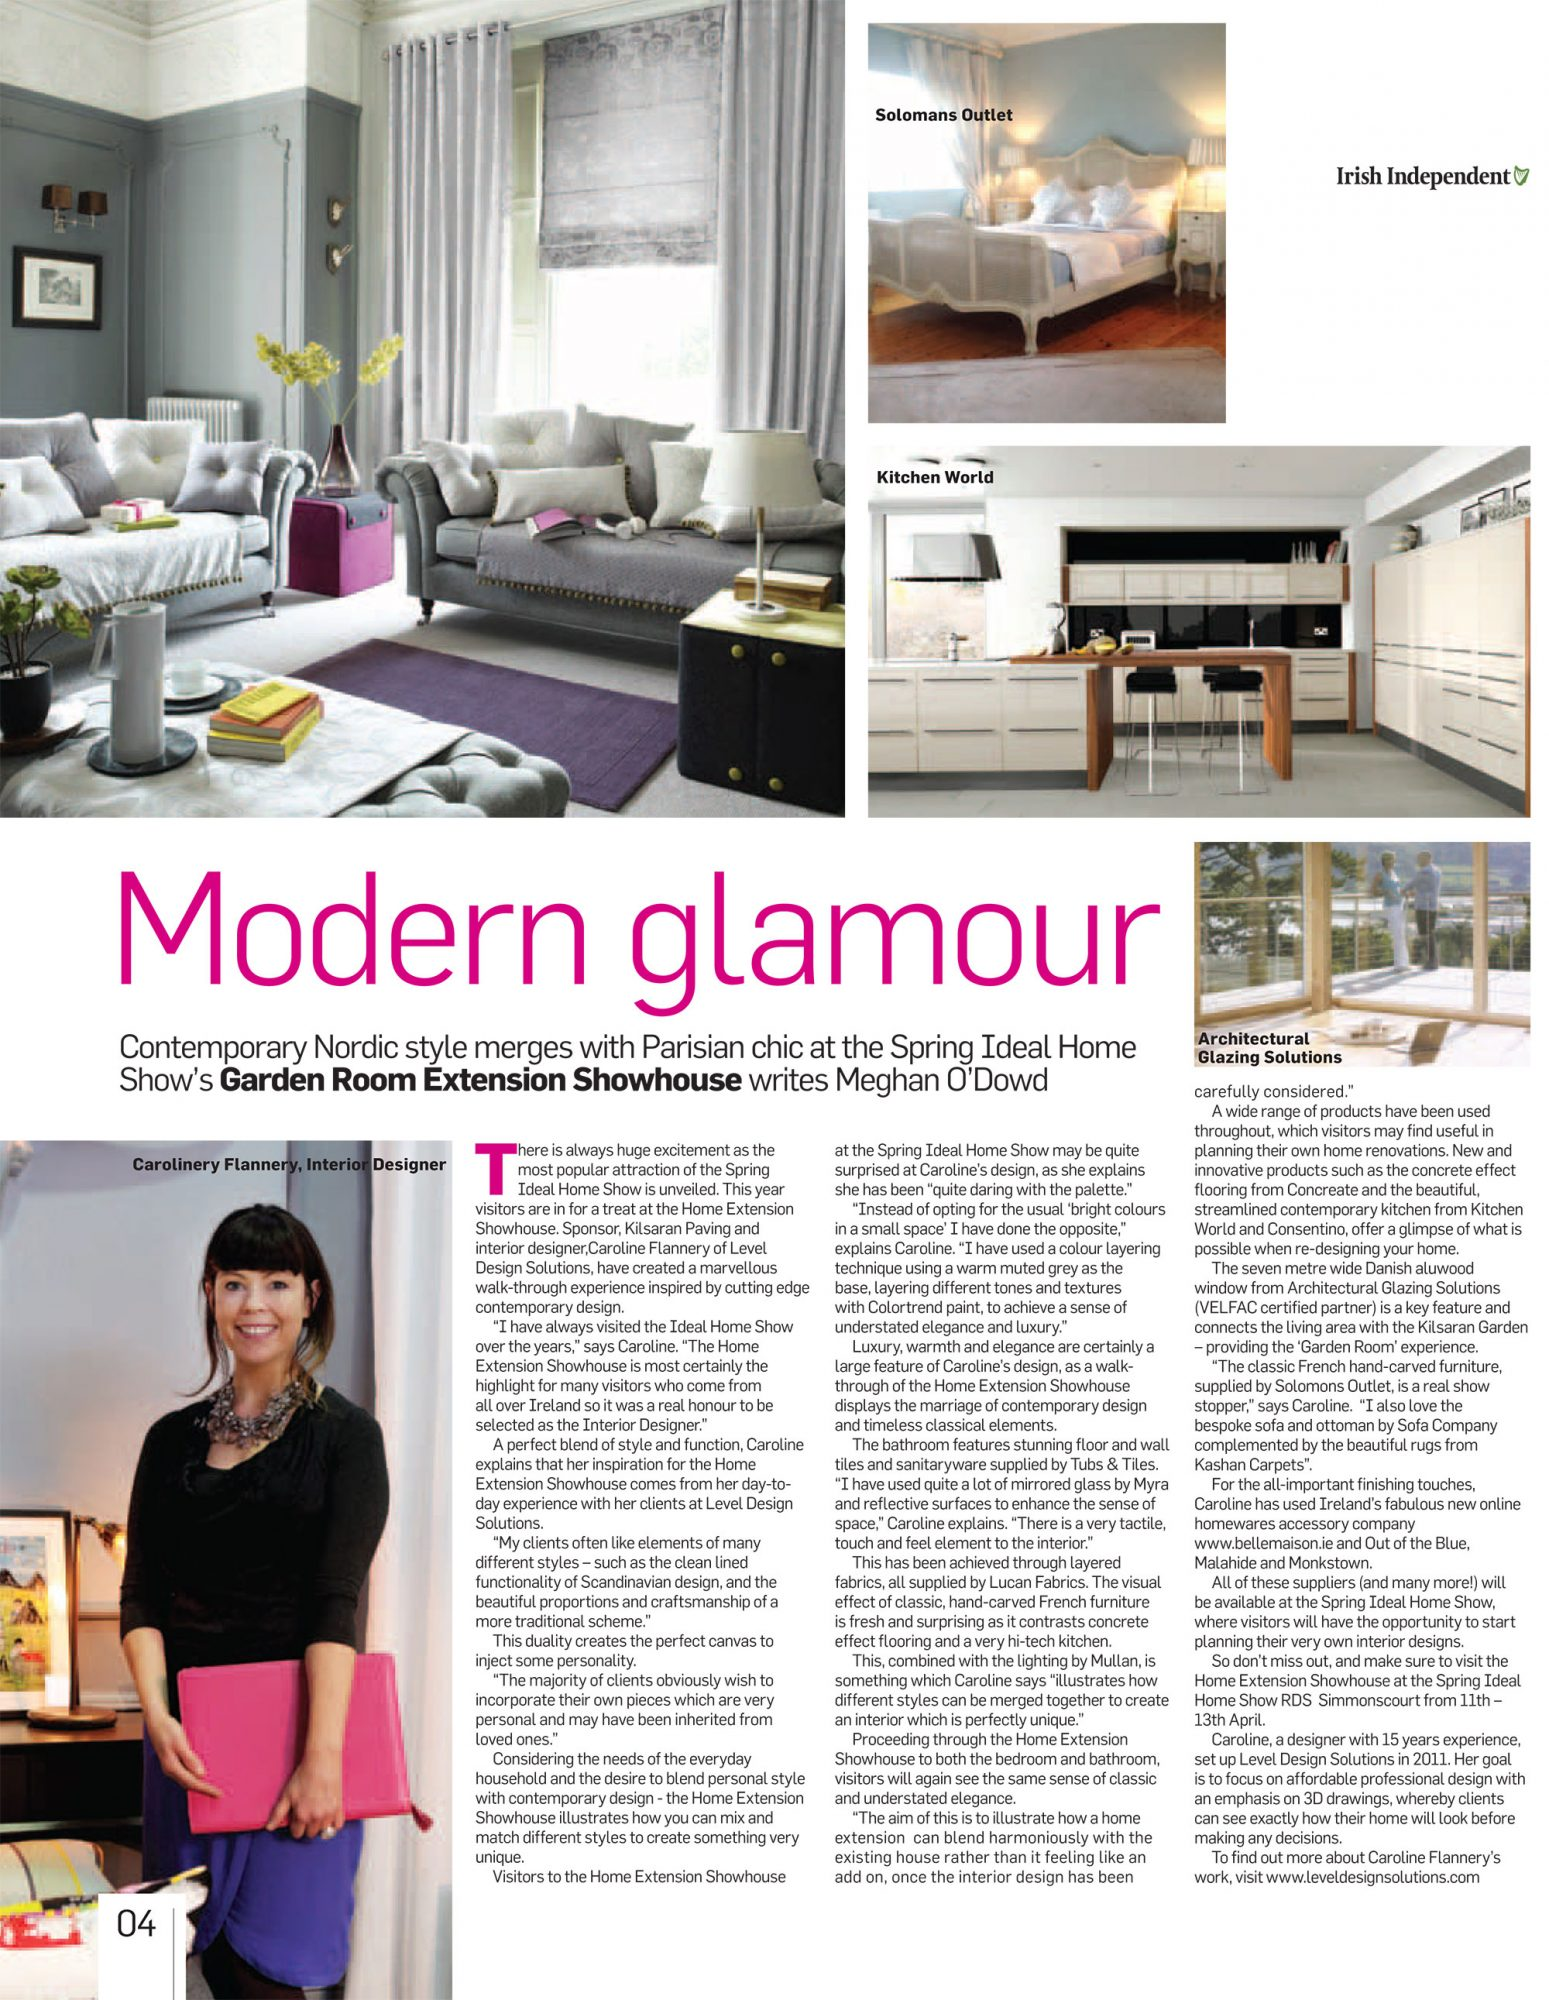 Irish Independent: Garden Room Home Extension Showhouse designed by ...